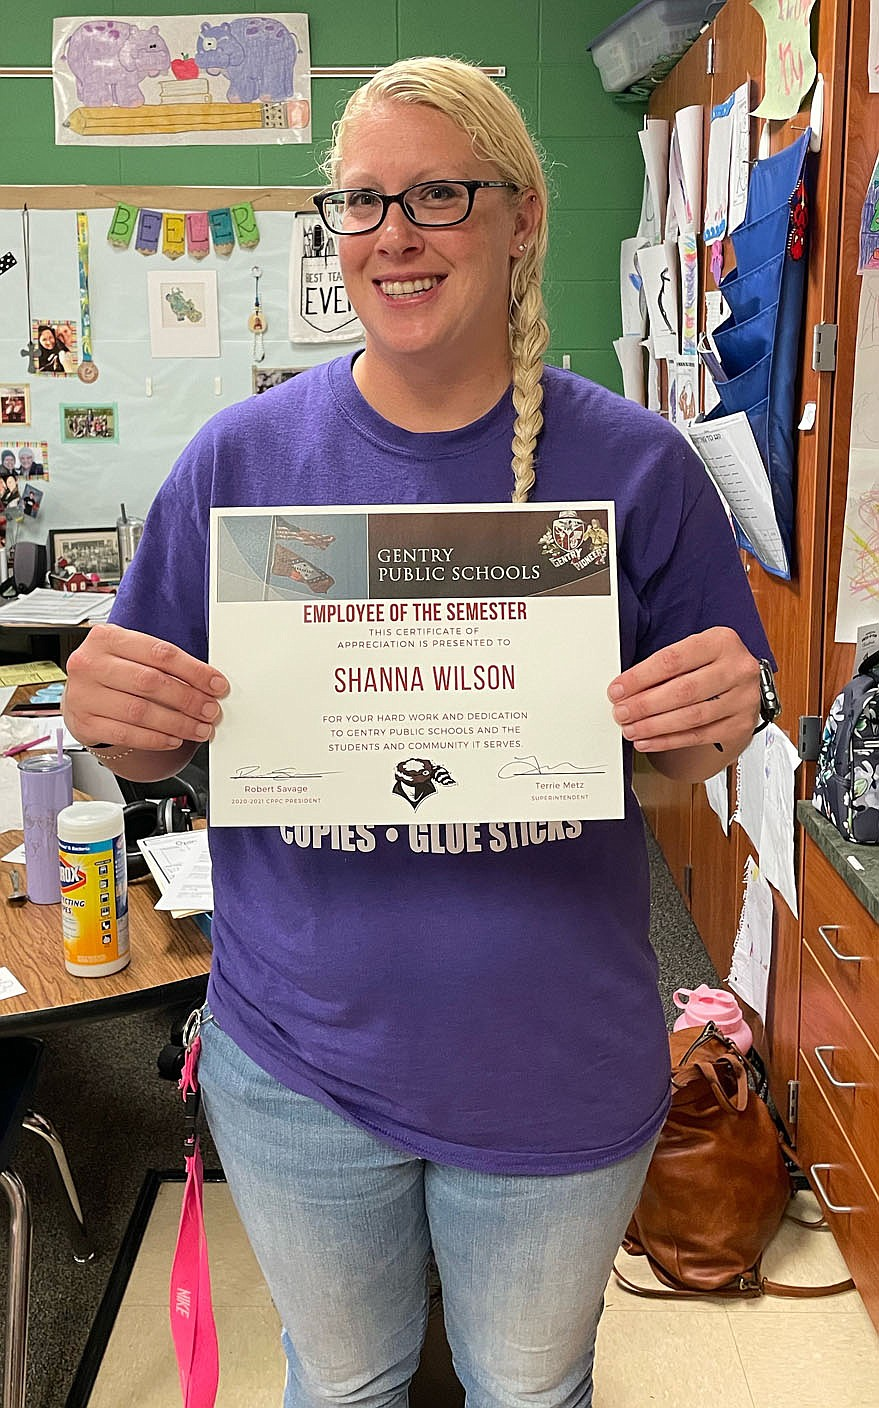 SUBMITTED Shanna Wilson received a classified employee of the semester award for her work in the Gentry Public Schools.